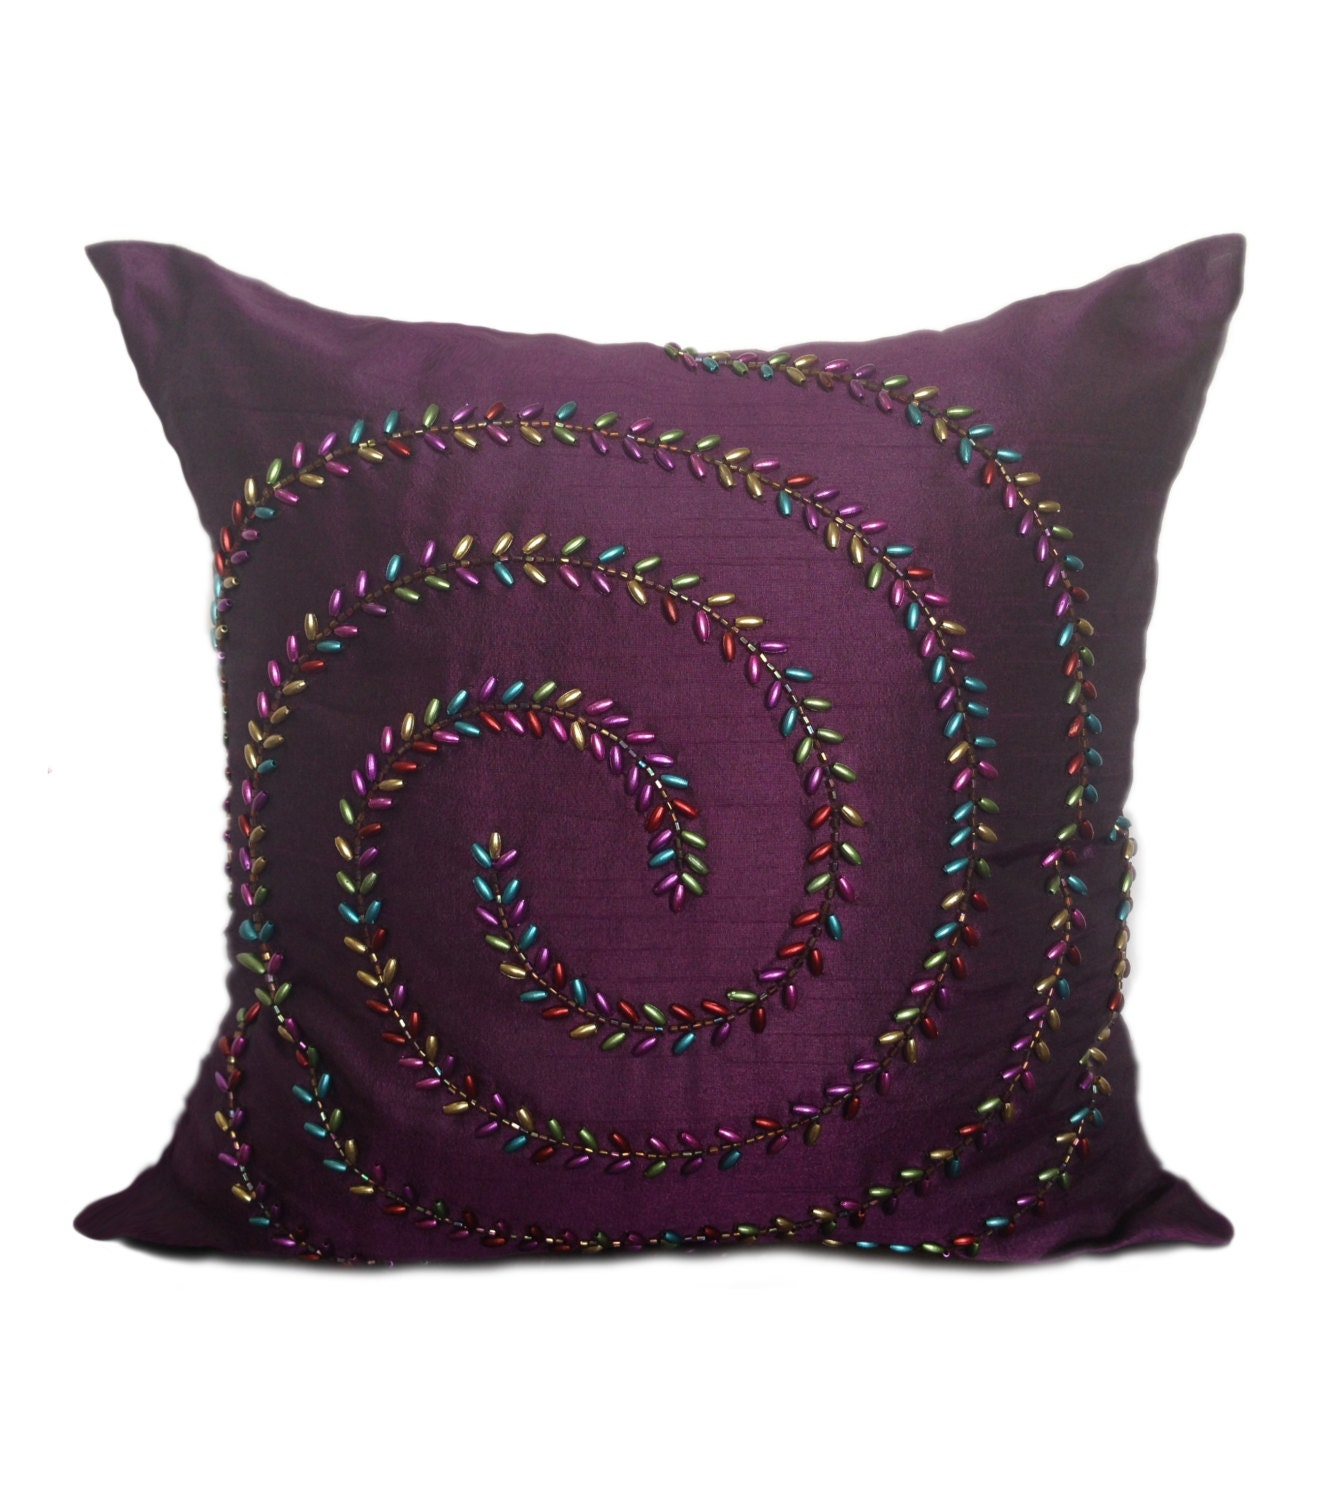 Purple Decorative Pillow : Deep Purple Decorative Pillow Cover Beaded With Metallic Look